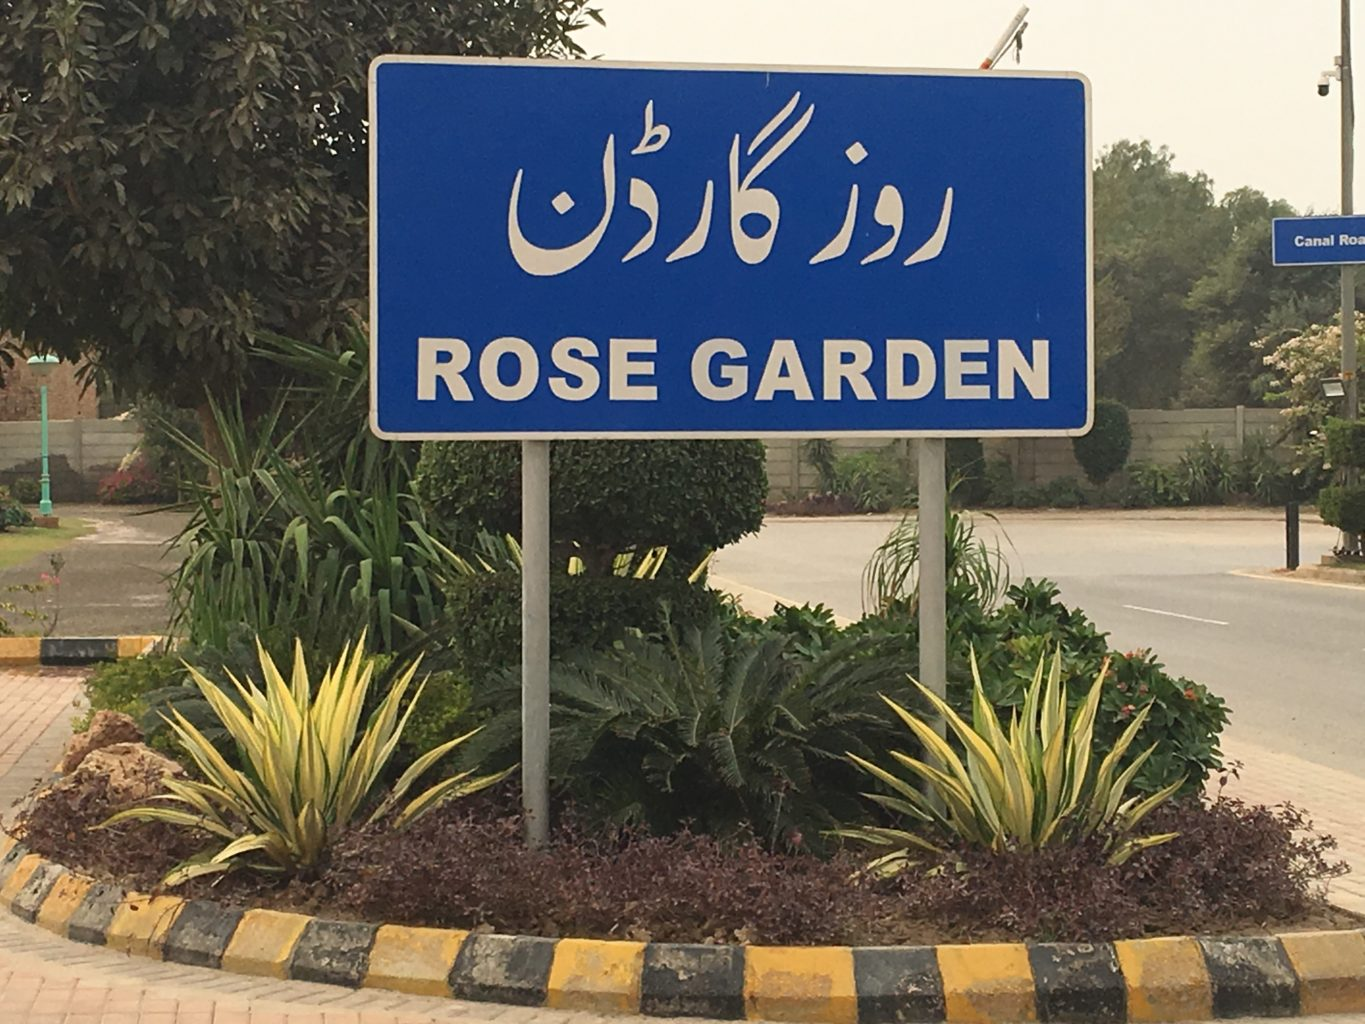 IMG 2624 - Bahria Town Rose Garden: A Sight to Behold